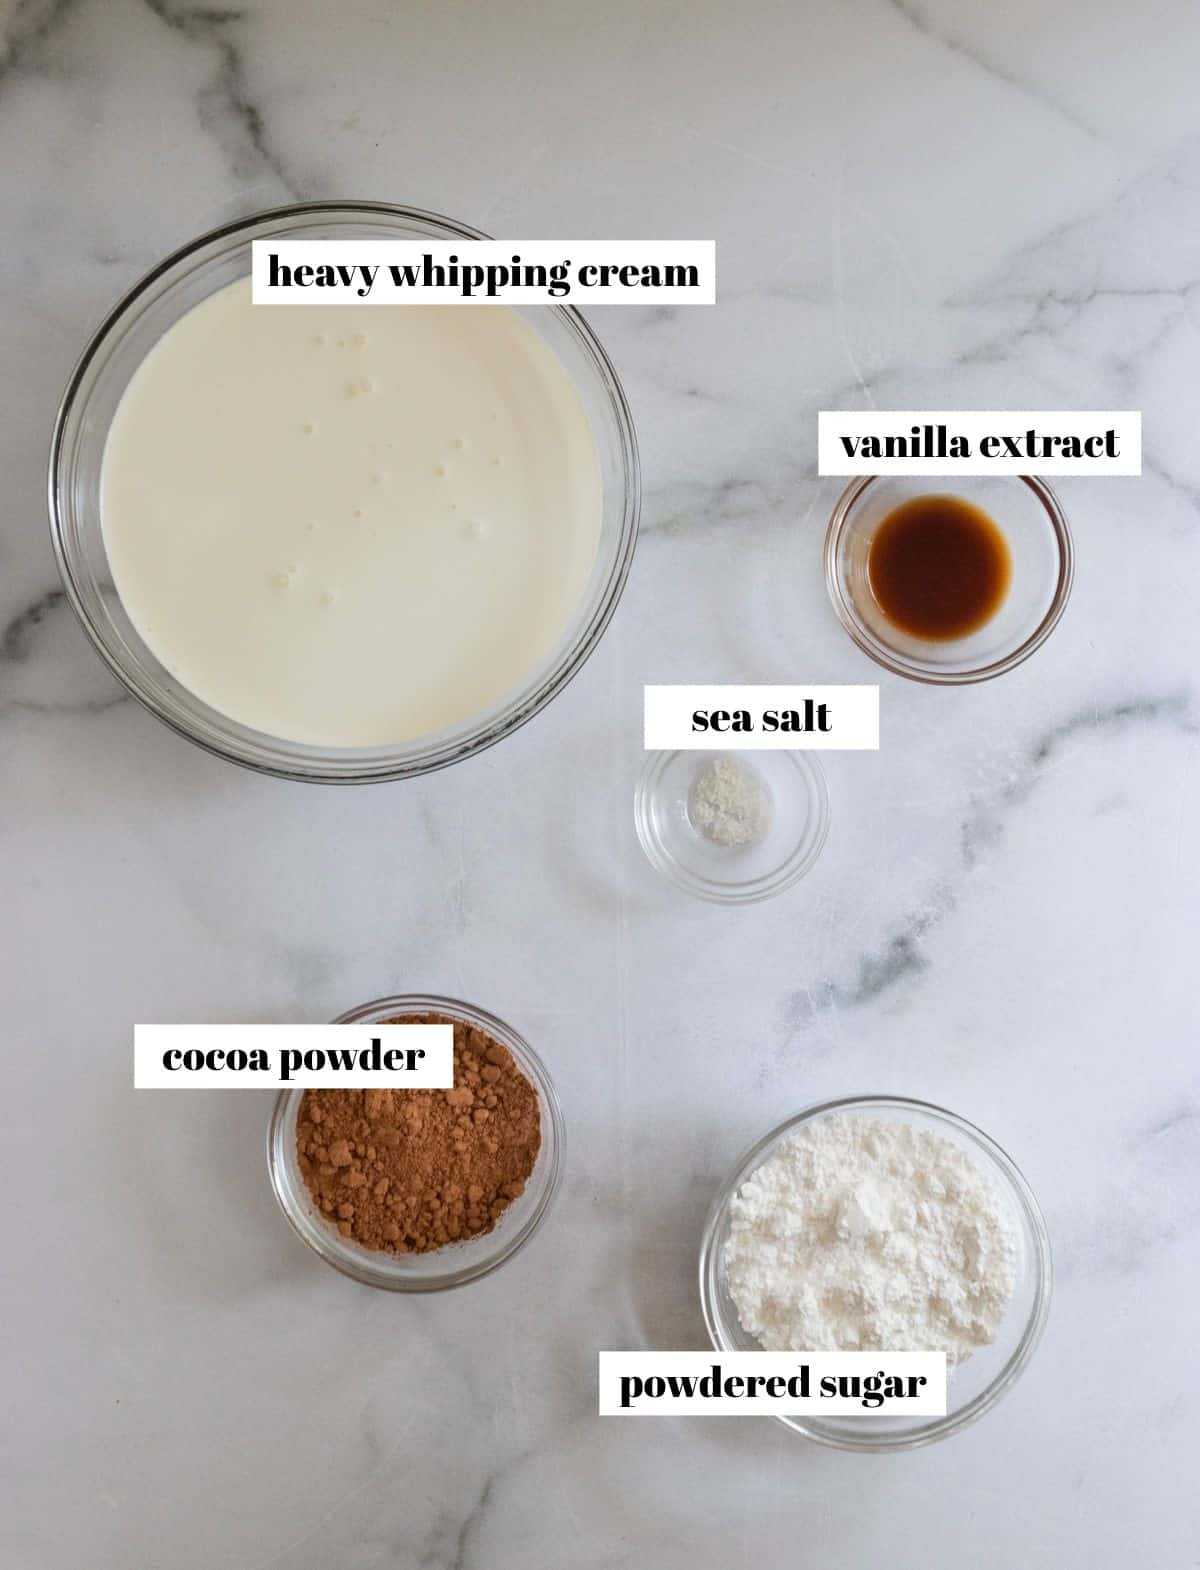 Cream, cocoa, powdered sugar, vanilla and salt on a counter and labeled.